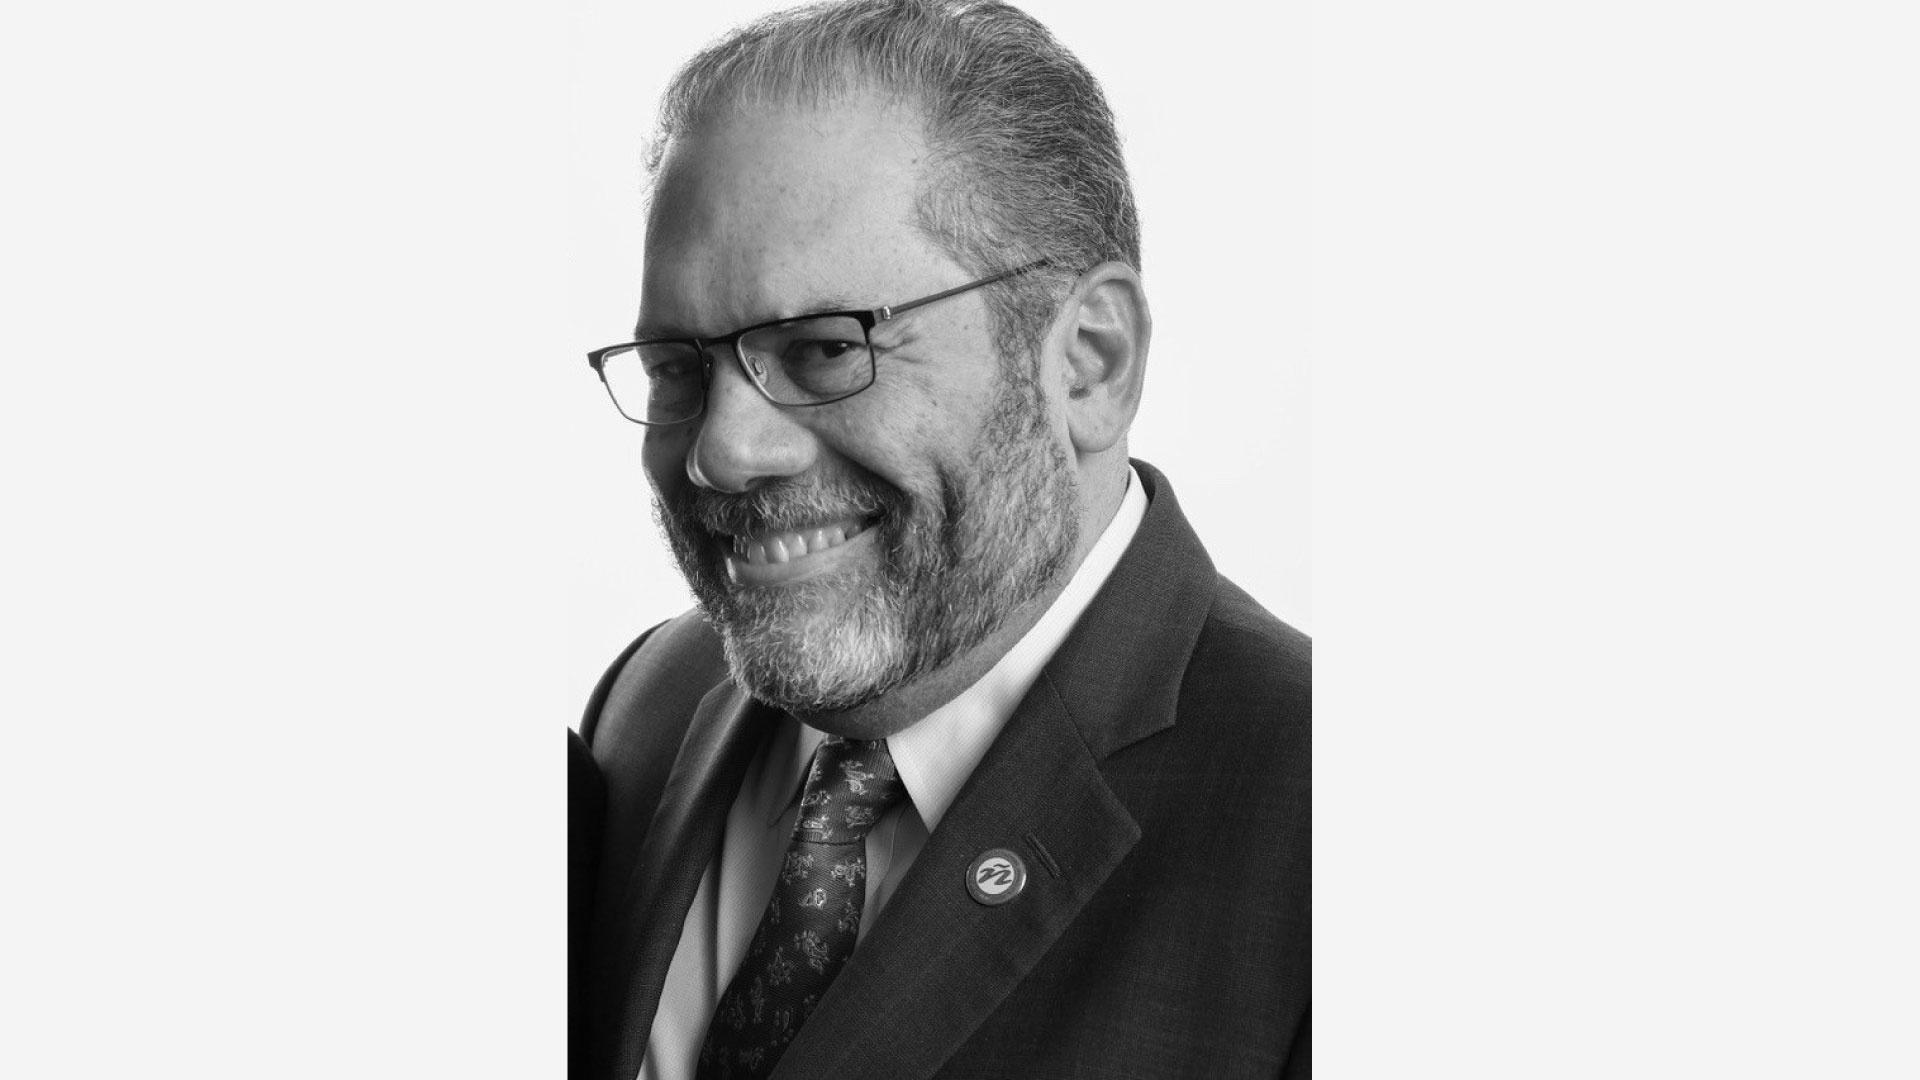 A black and white head shot of Ray Suarez. Ray has a beard and has on glasses while wearing a suit with a collared shirt and necktie.